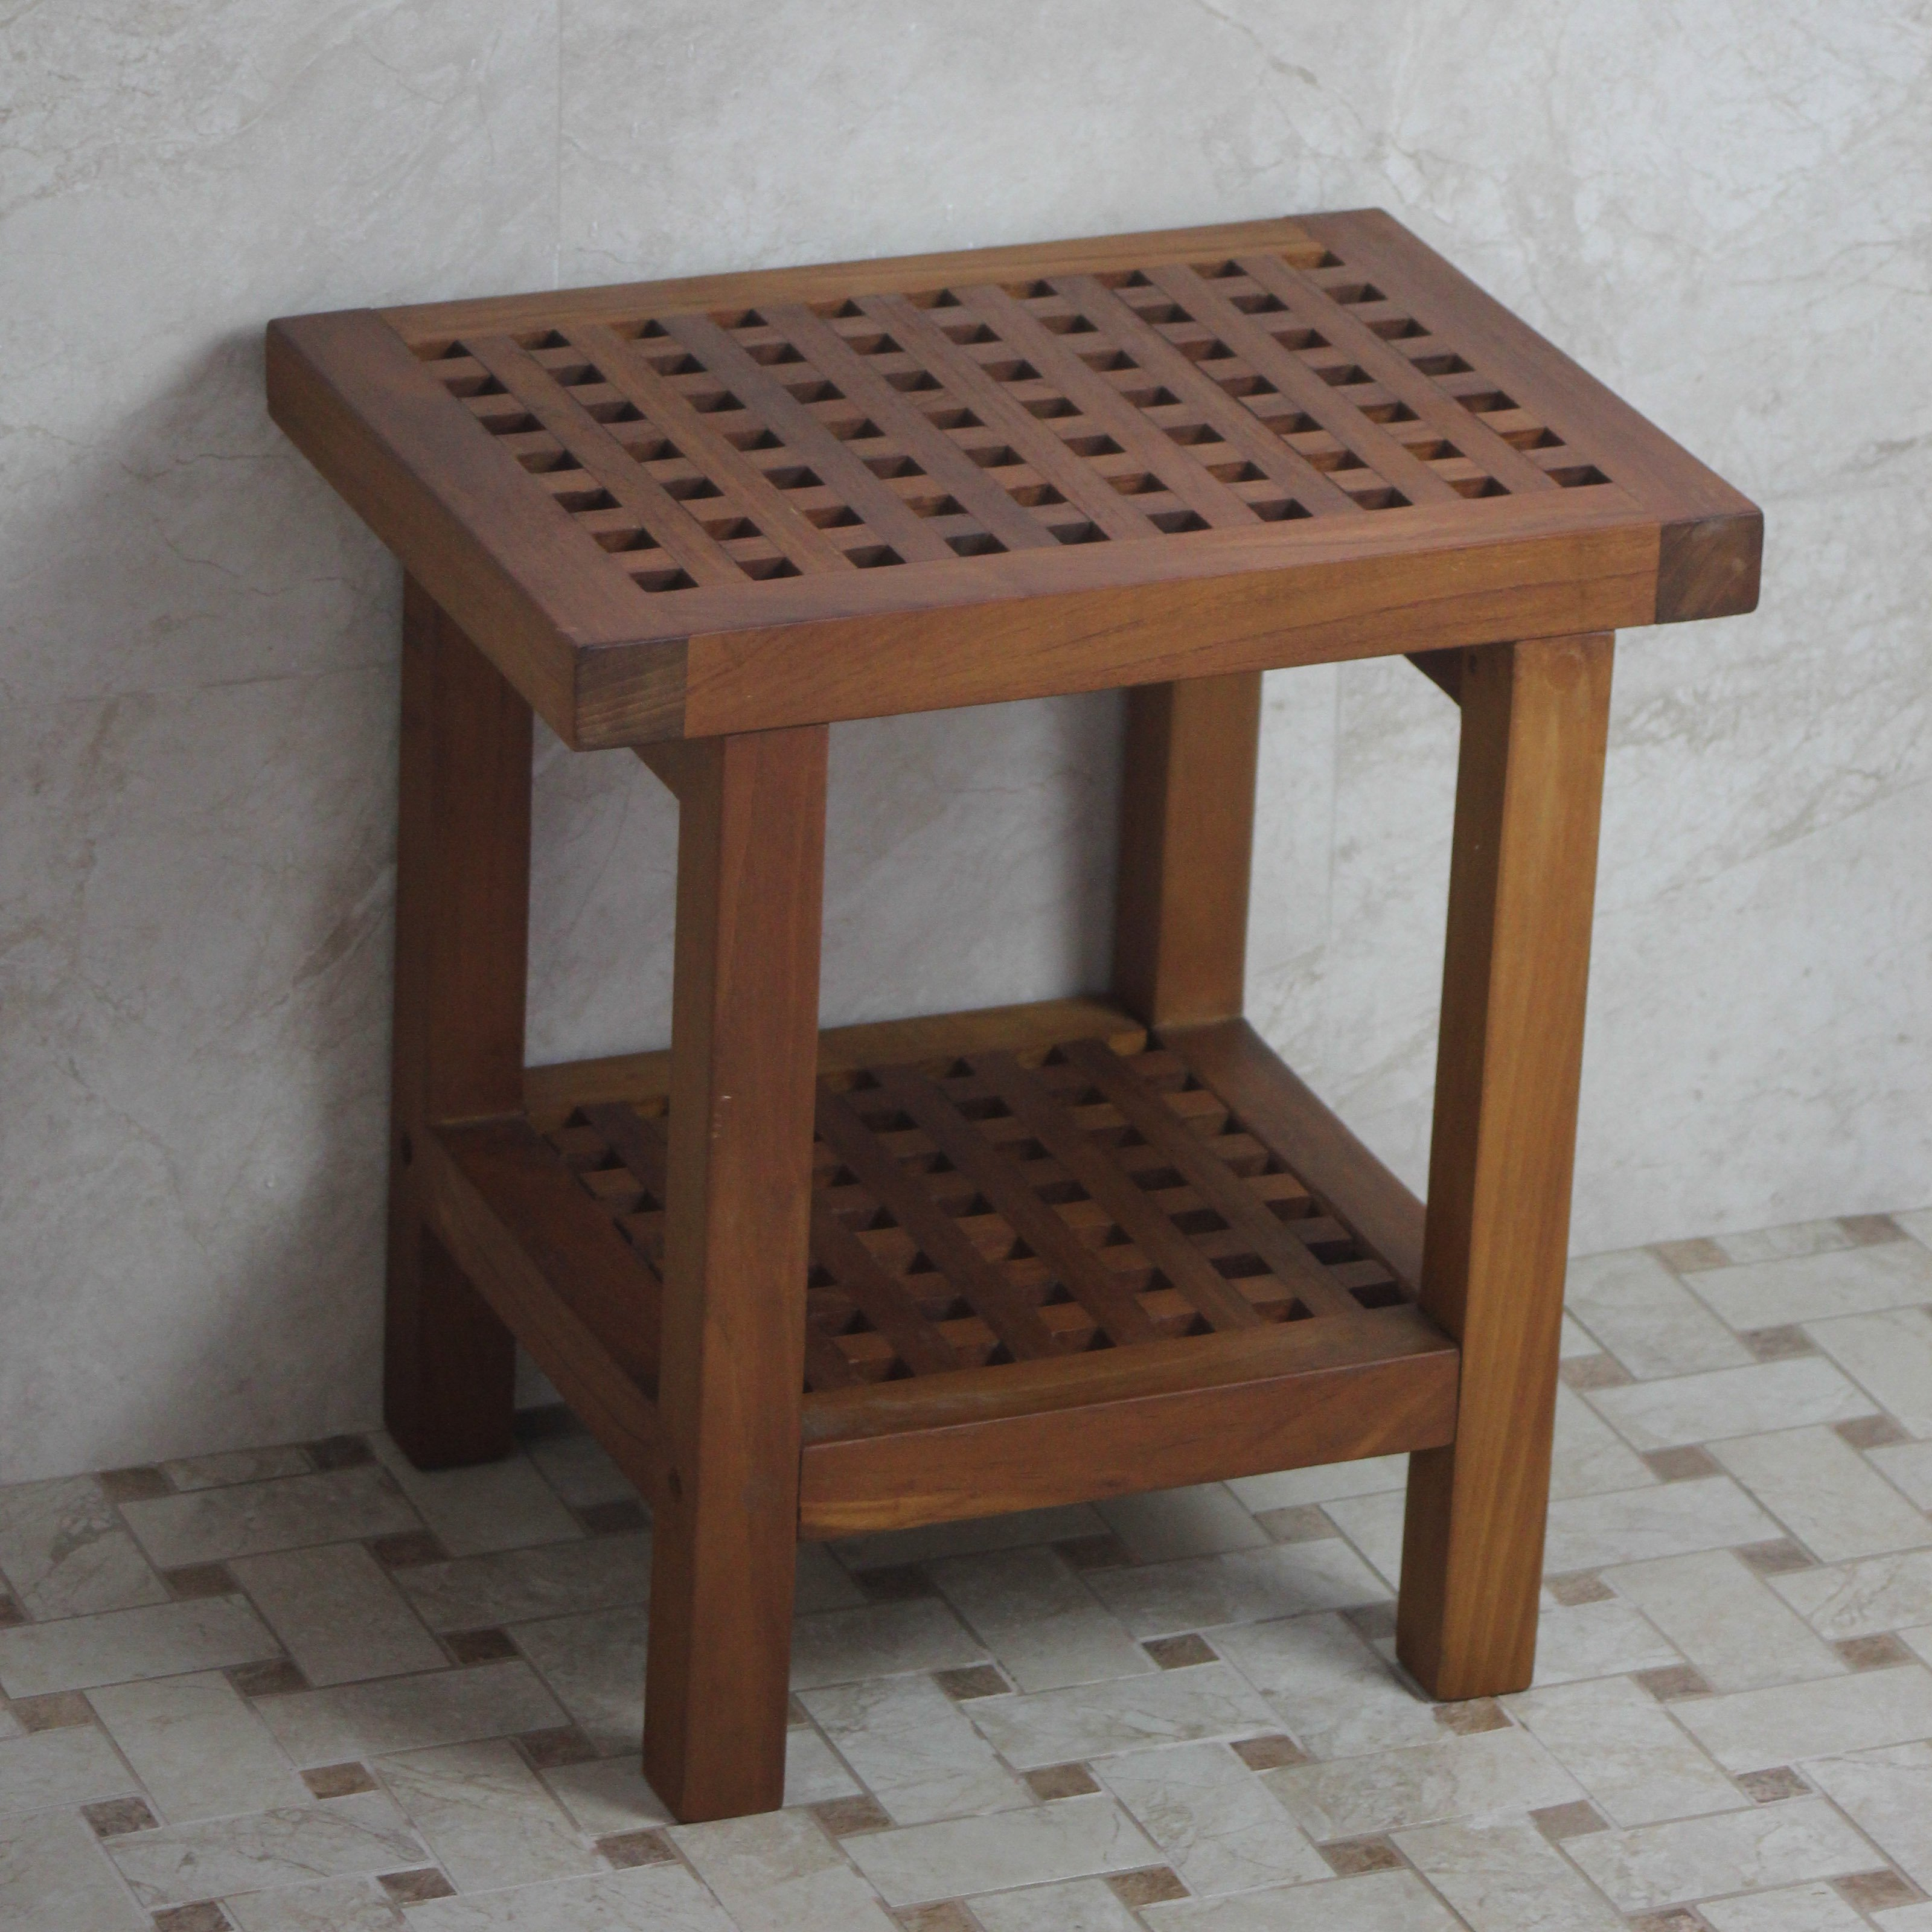 Aqua Teak Grate Stool with Shelf 17 in. Wide